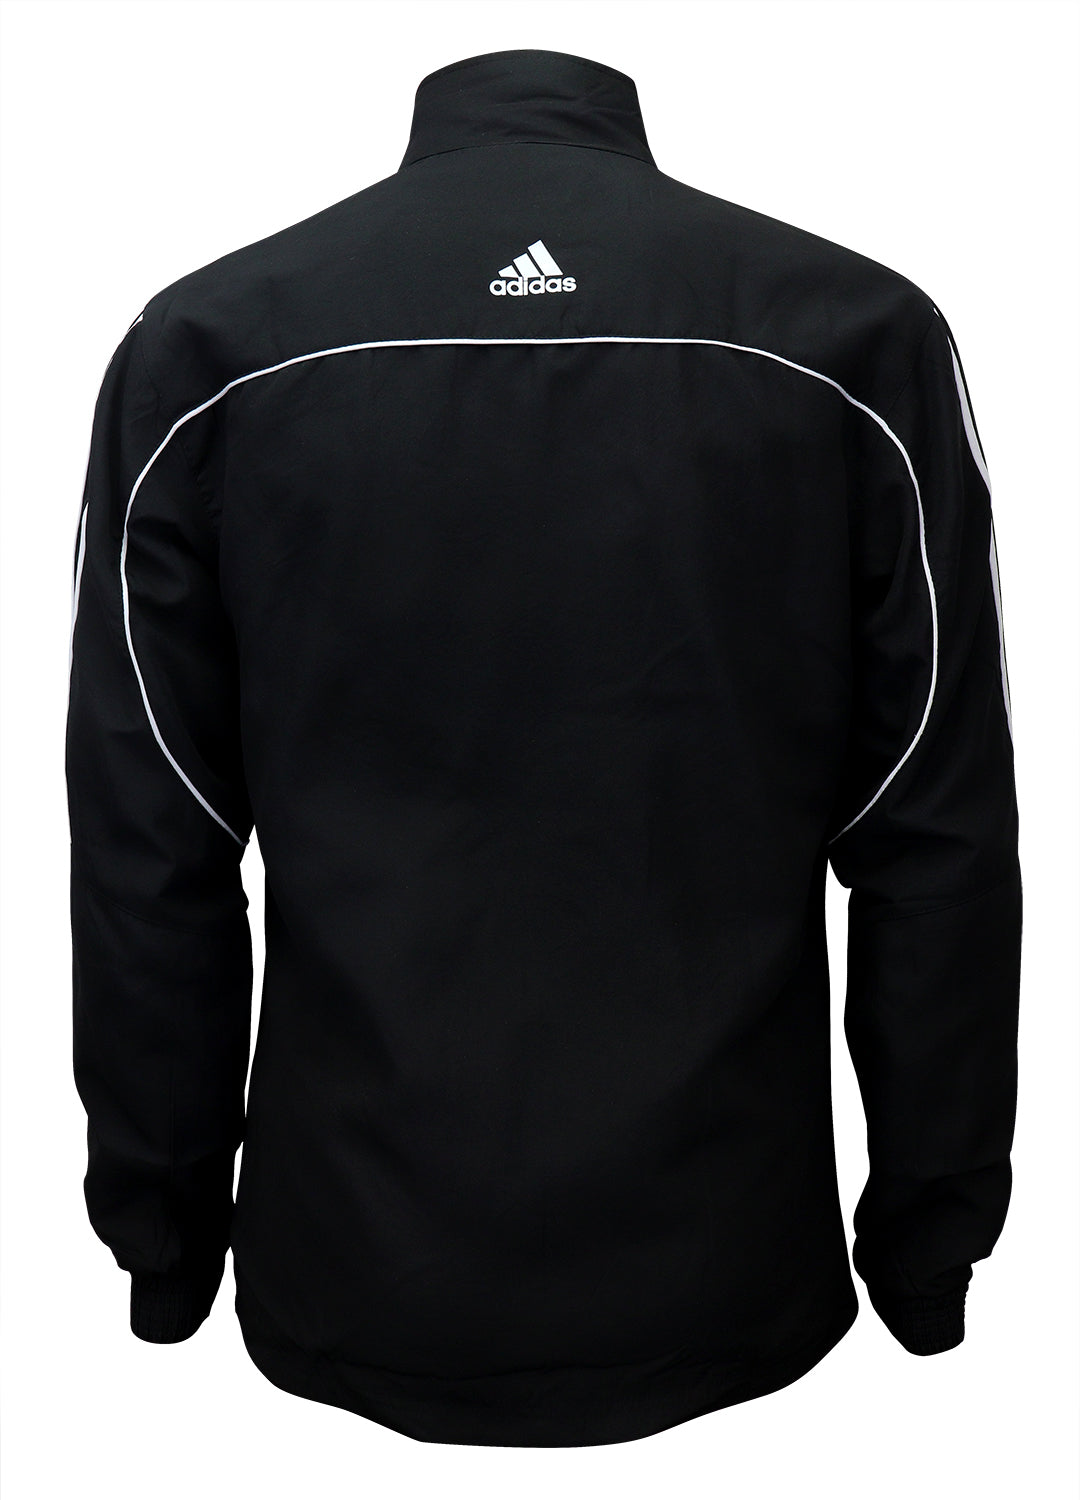 adidas Black with White Stripes Windbreaker Style Team Jacket Back View